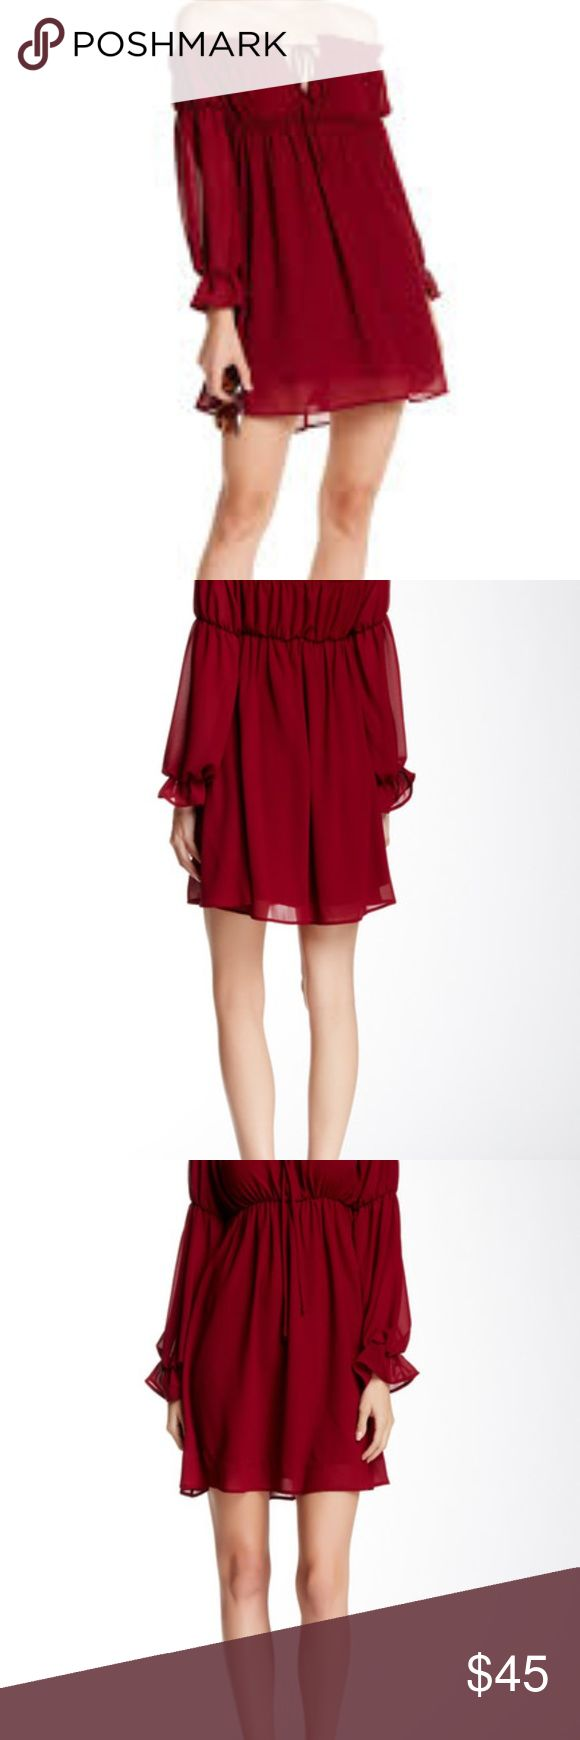 Dee Elly Off The Shoulder Bell Dress Burgundy Only Worn